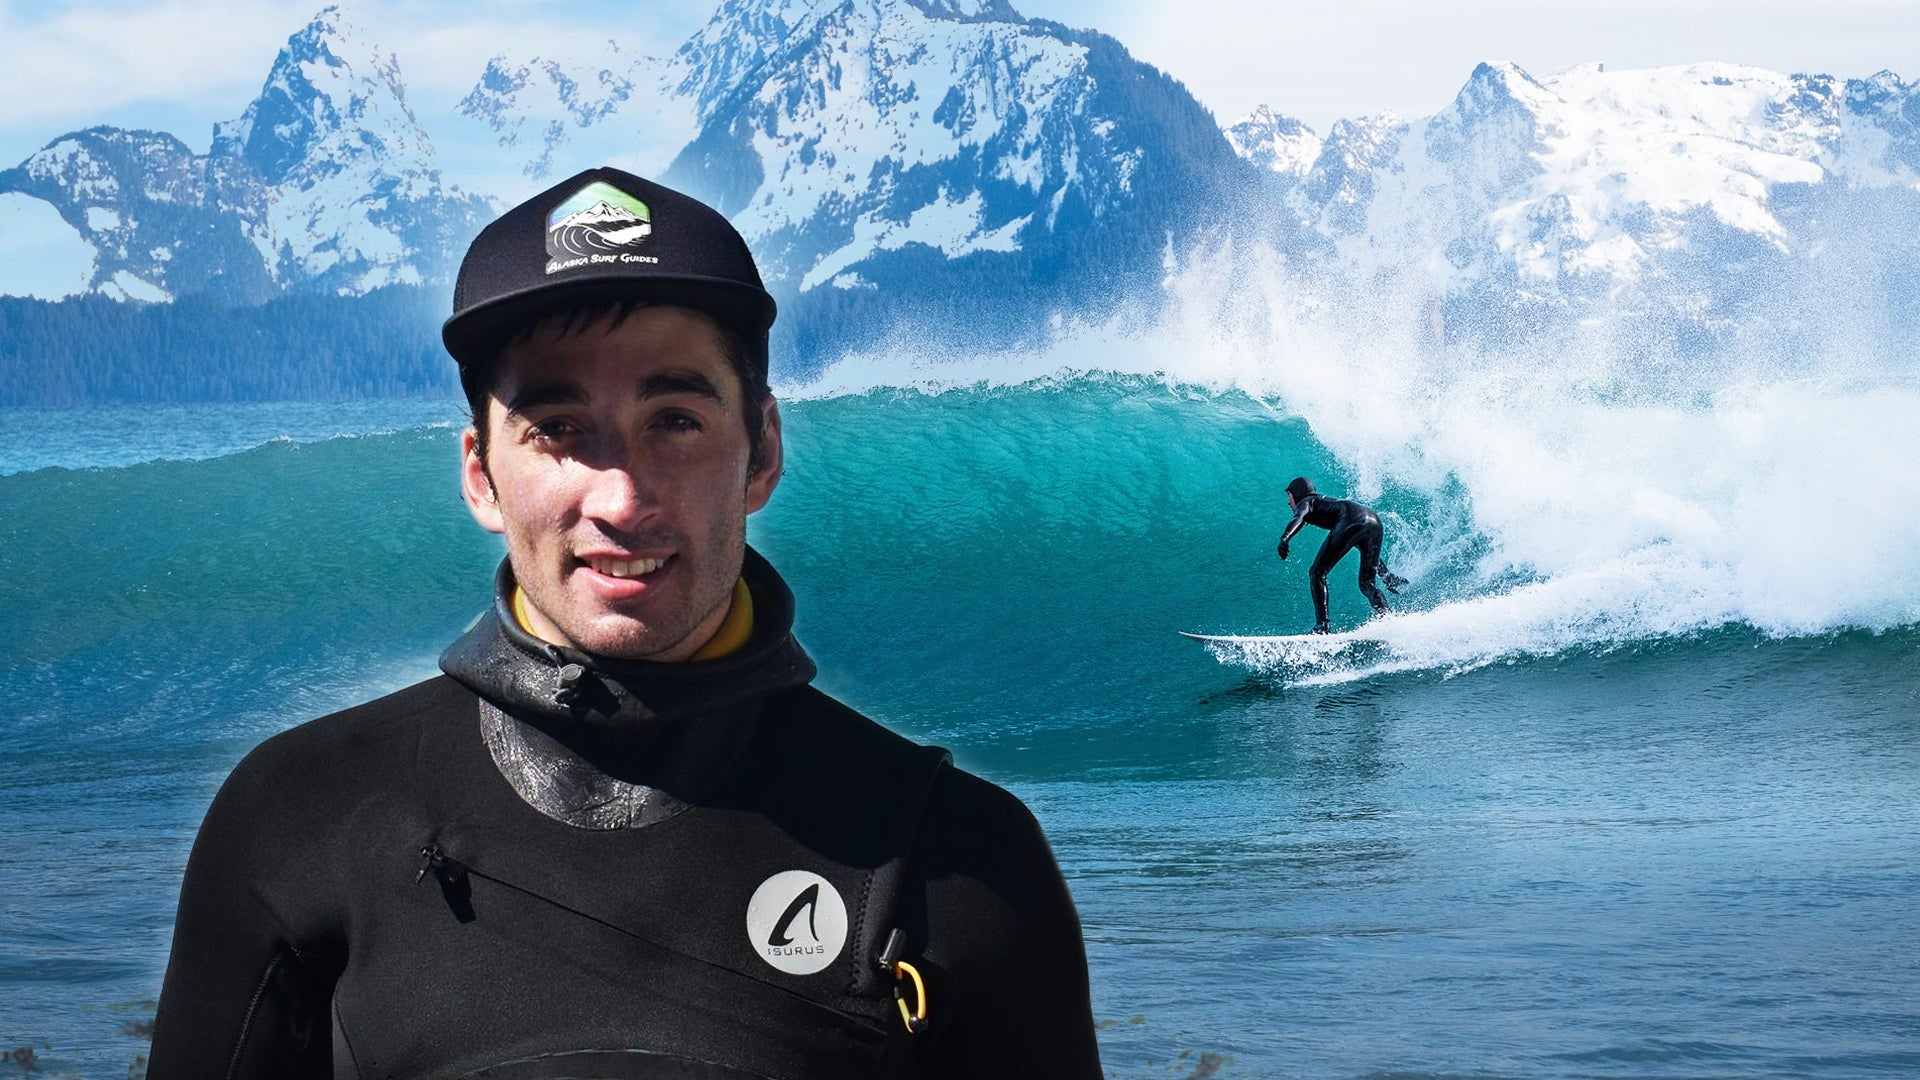 Explore Alaska's Waves with Scott Reierson of Alaska Surf Guides